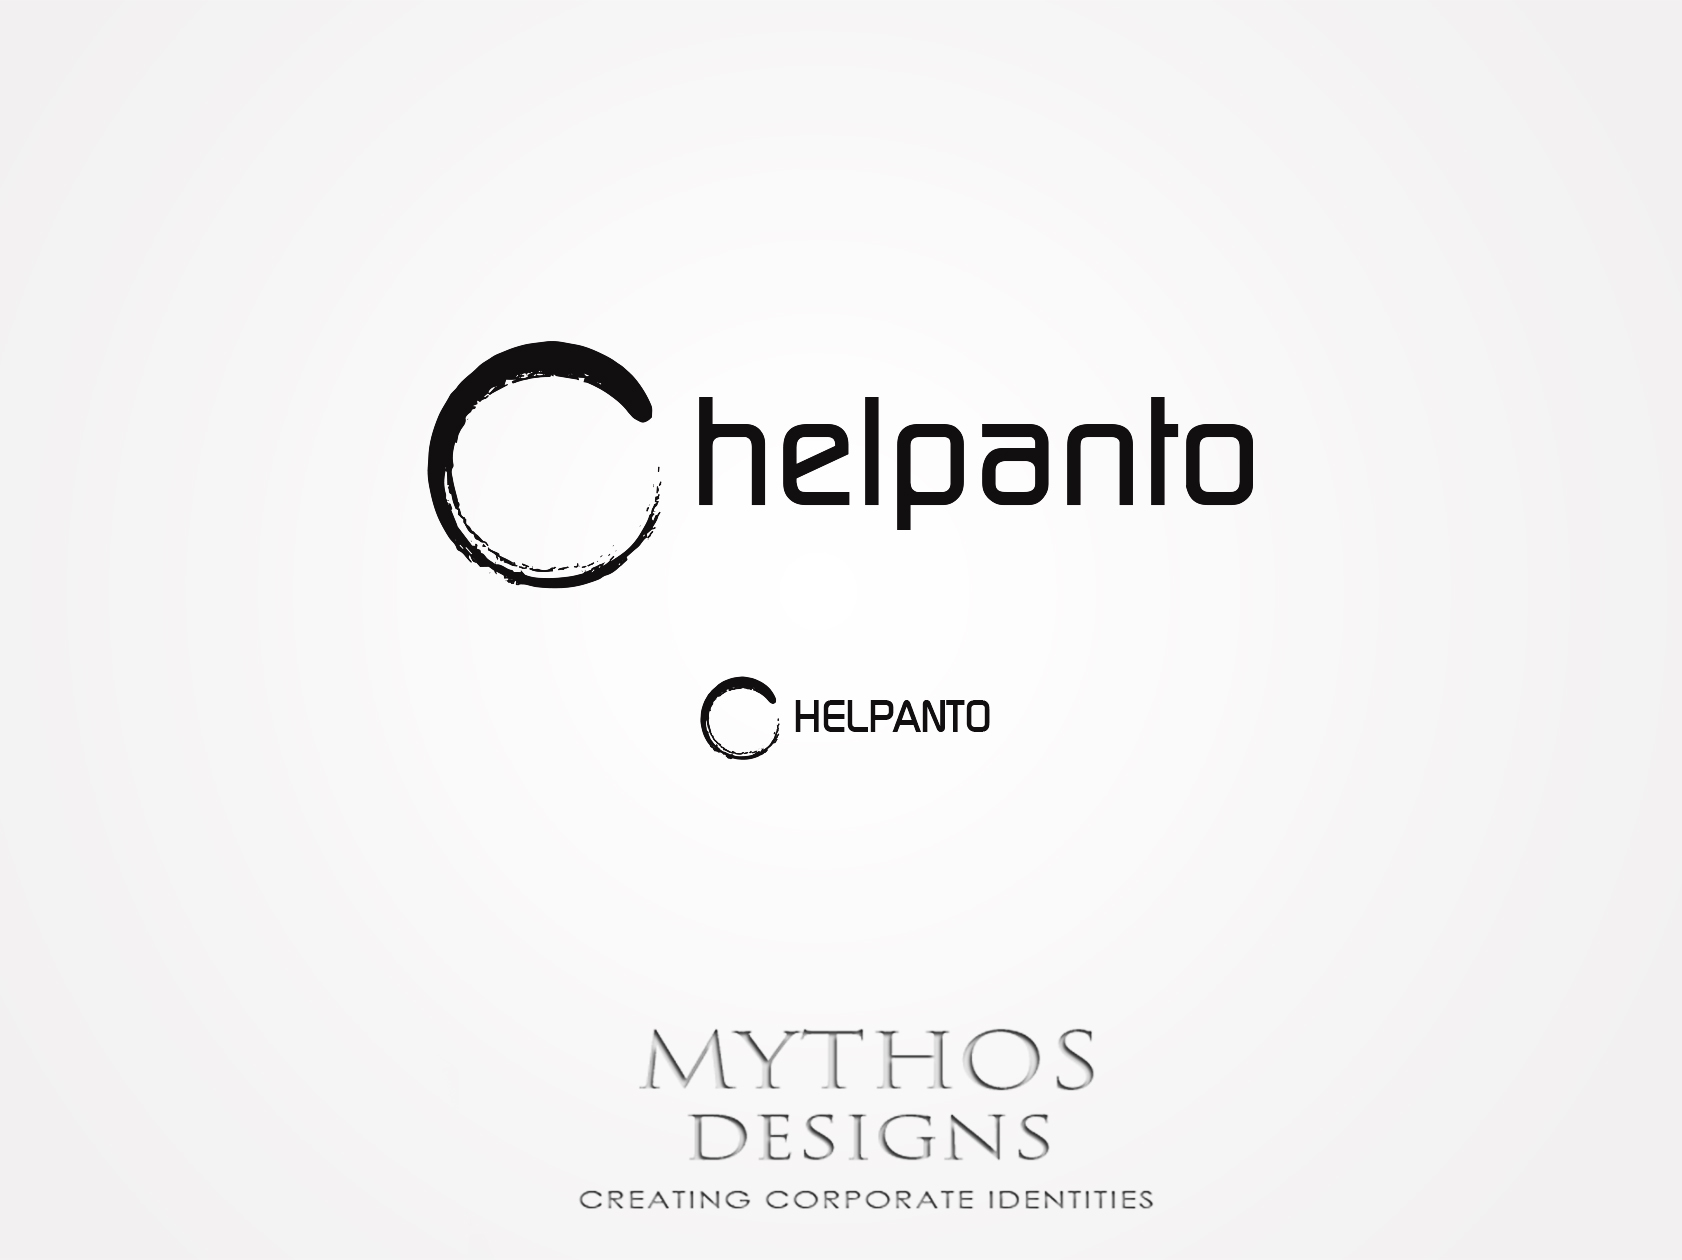 Logo Design by Mythos Designs - Entry No. 110 in the Logo Design Contest Artistic Logo Design for helpanto.